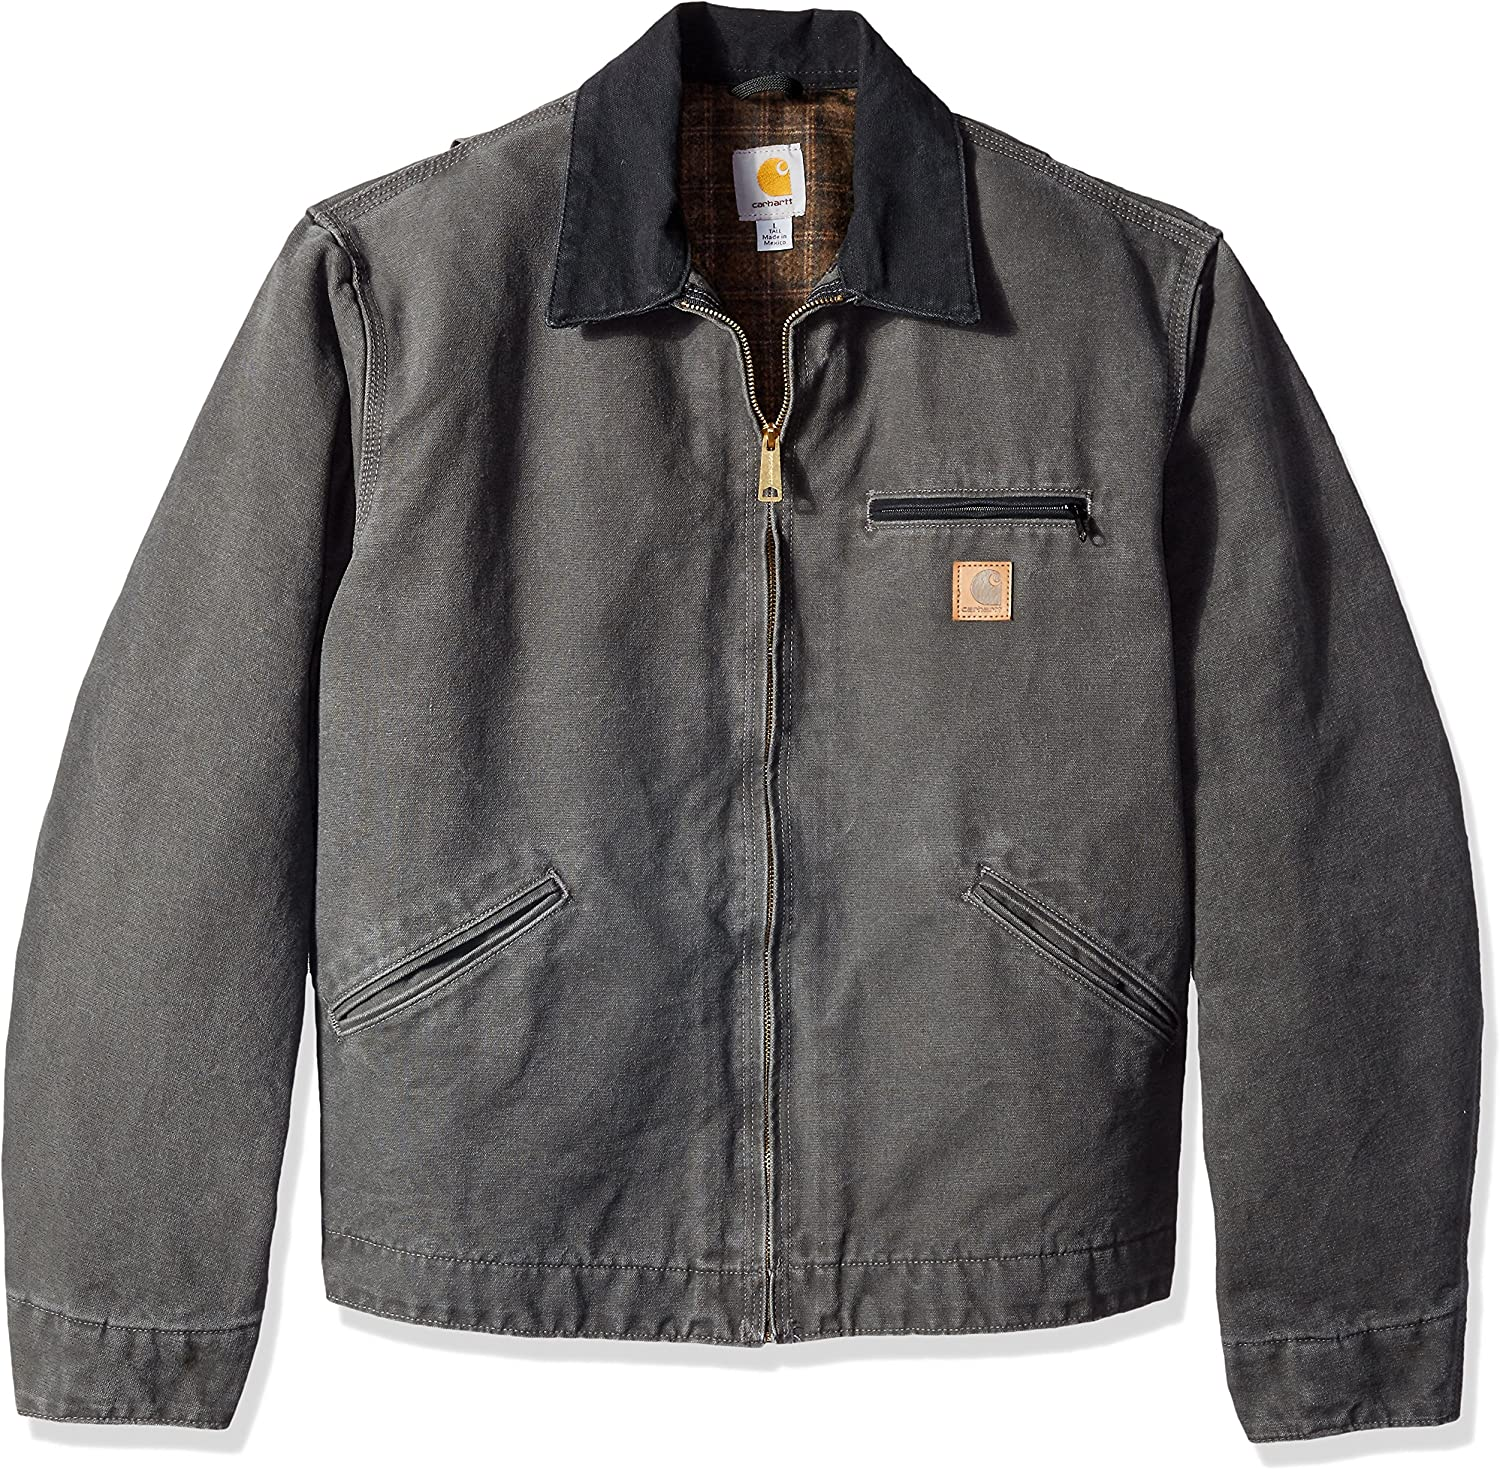 Carhartt Mens Blanket Lined Sandstone Detroit Jacket J97, Gravel ...